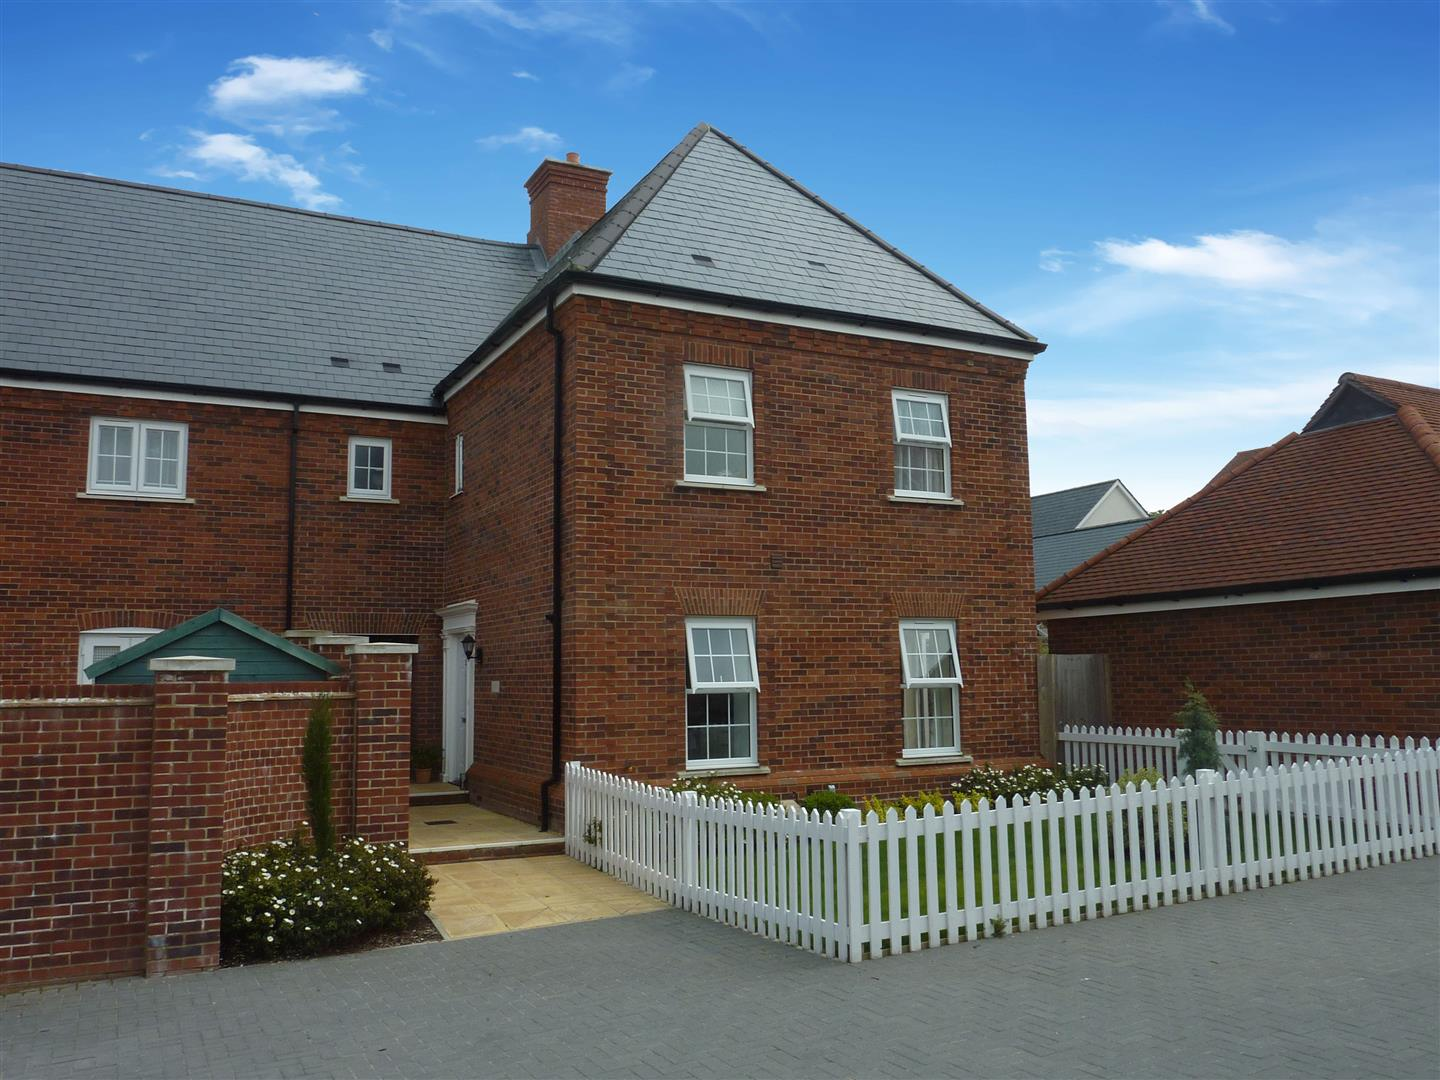 3 bedroom end mews house for sale